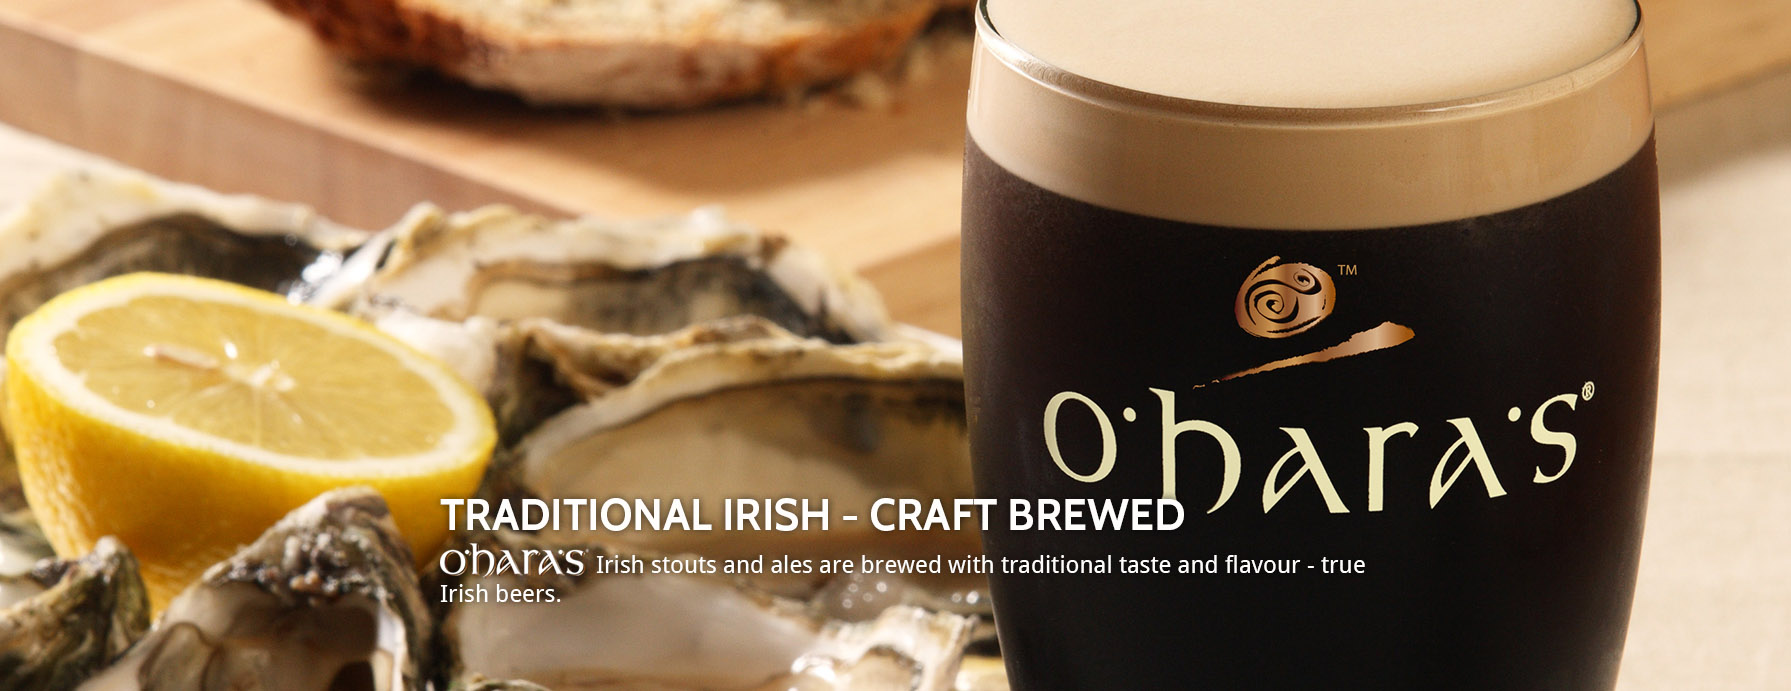 Home-Page-Traditional-Irish-Craft-Brew-34